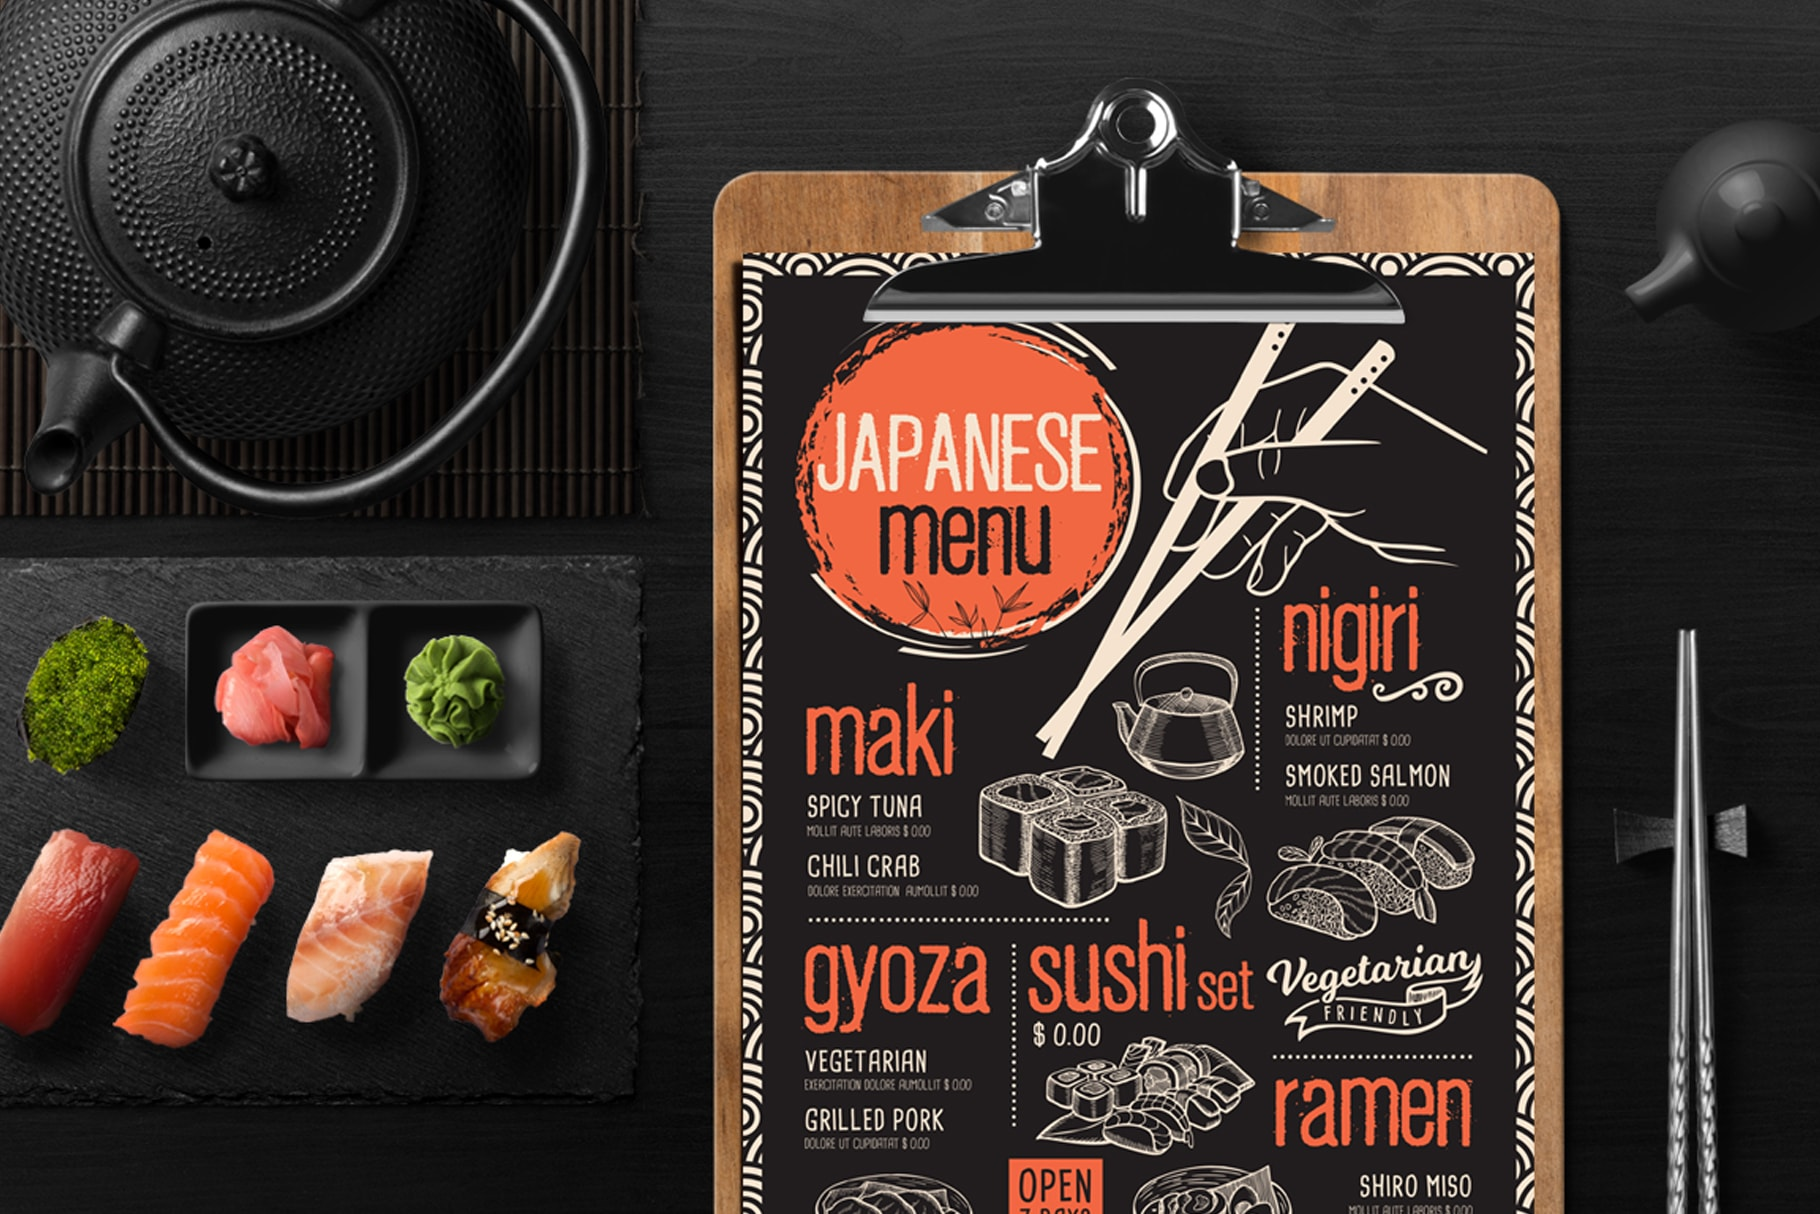 sushi menu template design for restaurant with hand drawn illustrations